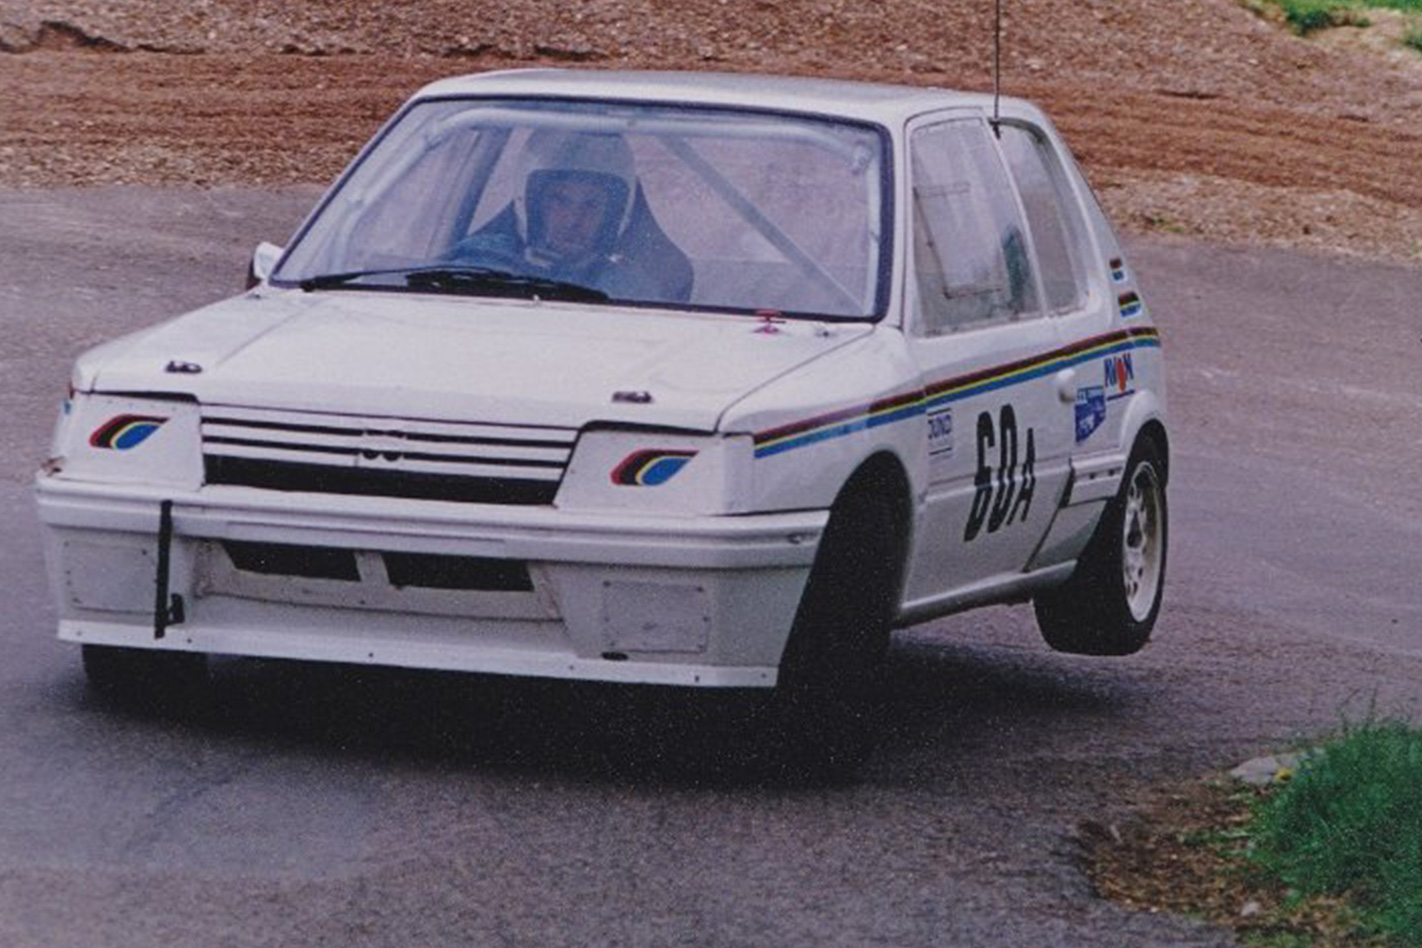 Peugeot 205 built by F1 driving